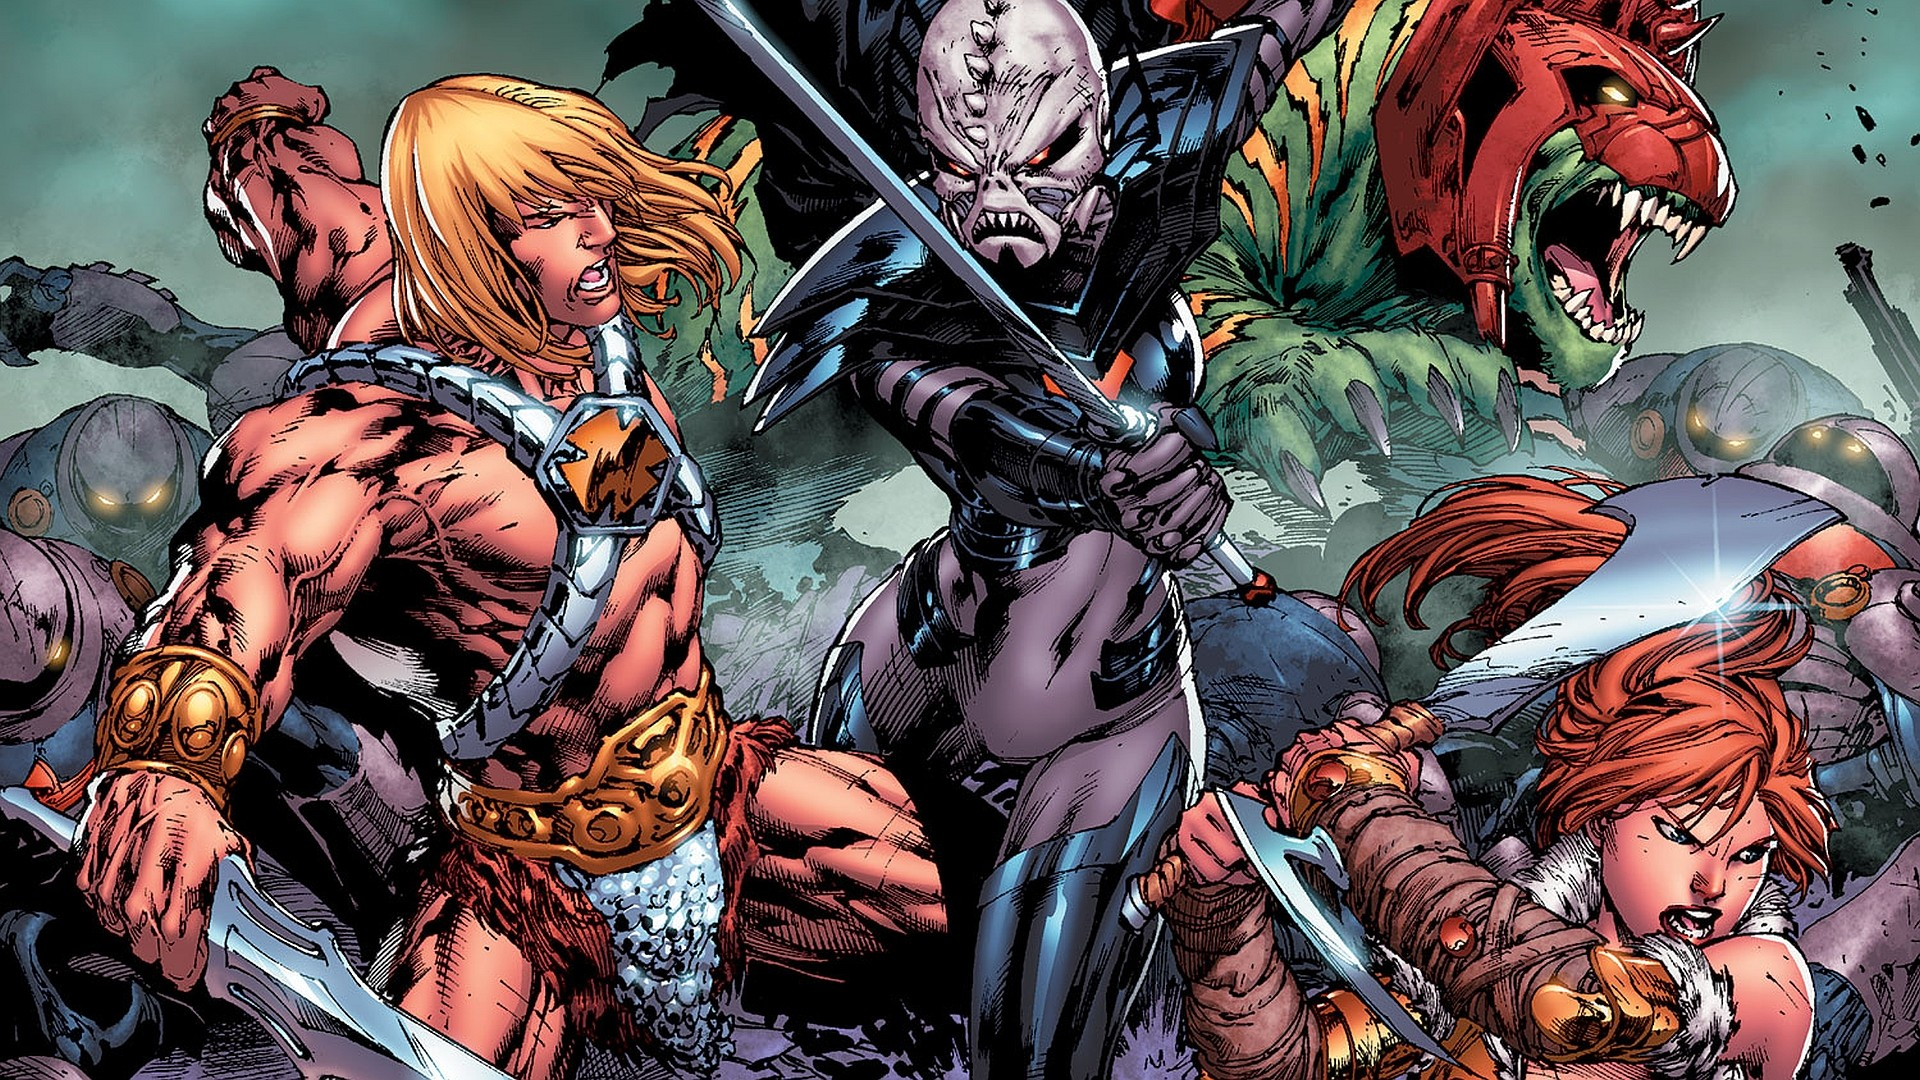 Res: 1920x1080, Comics - He-Man And The Masters Of The Universe Wallpaper